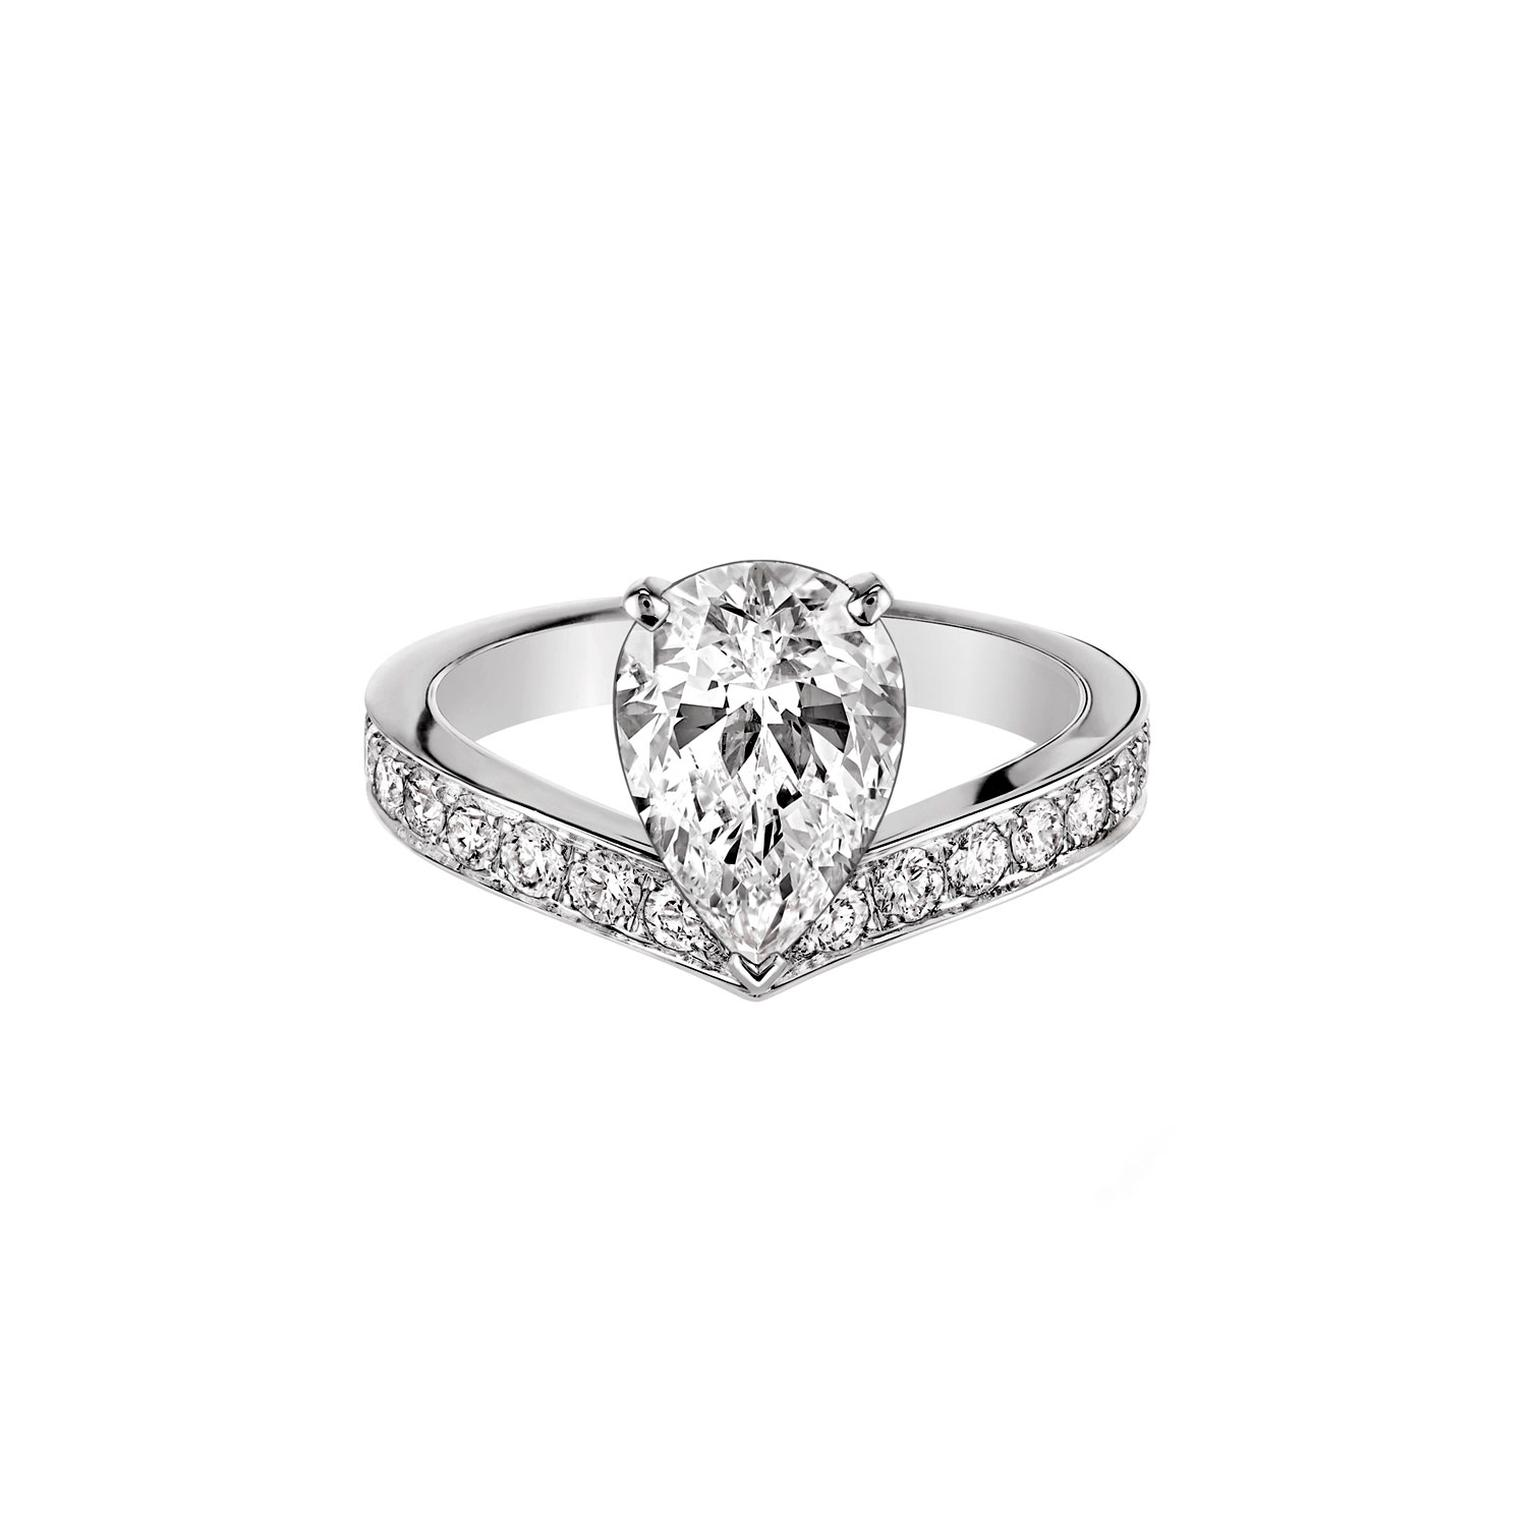 Chaumet Bague Aigrette diamond ring